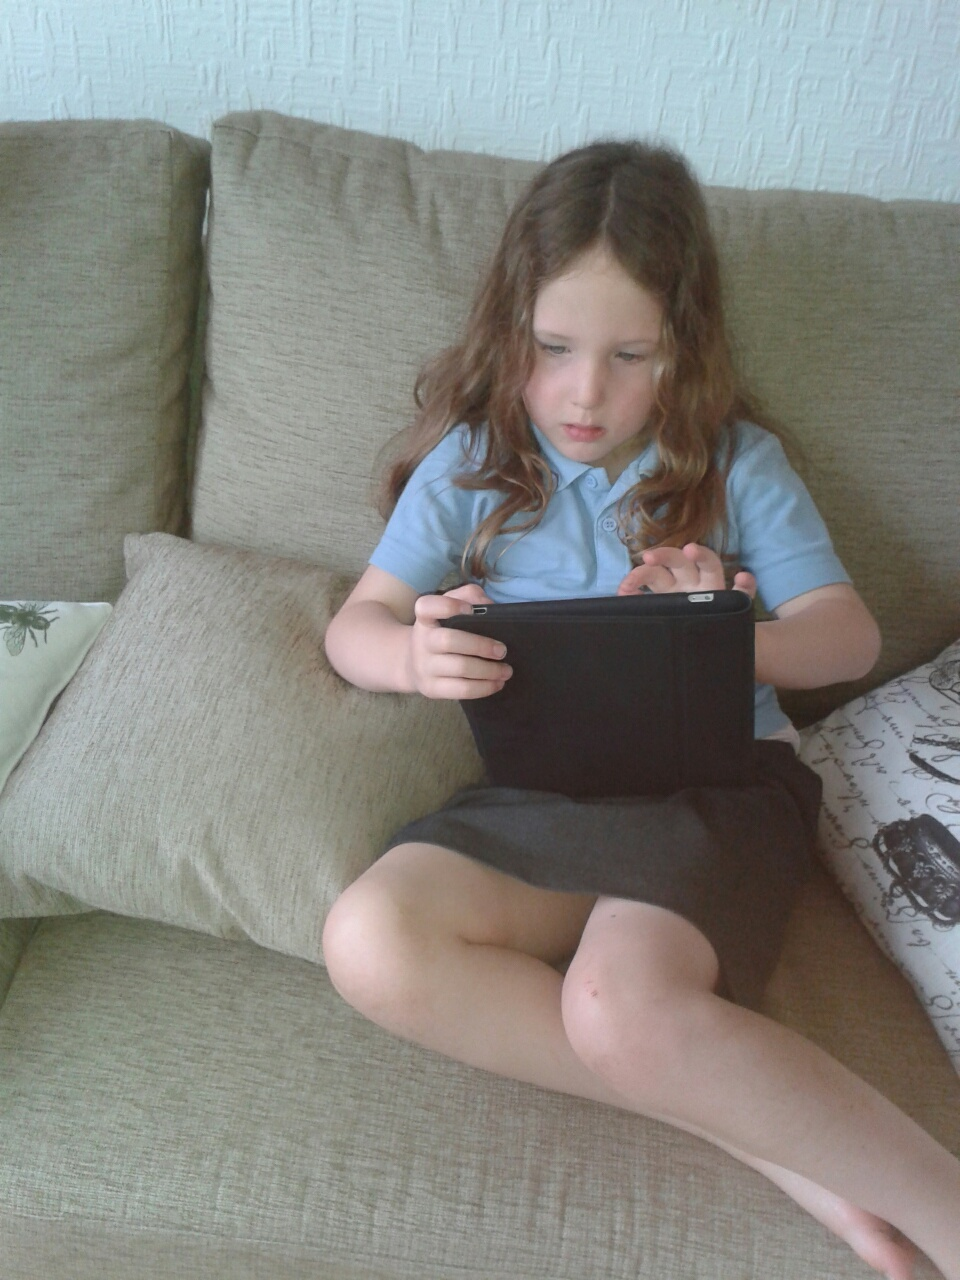 Caitlin with iPad